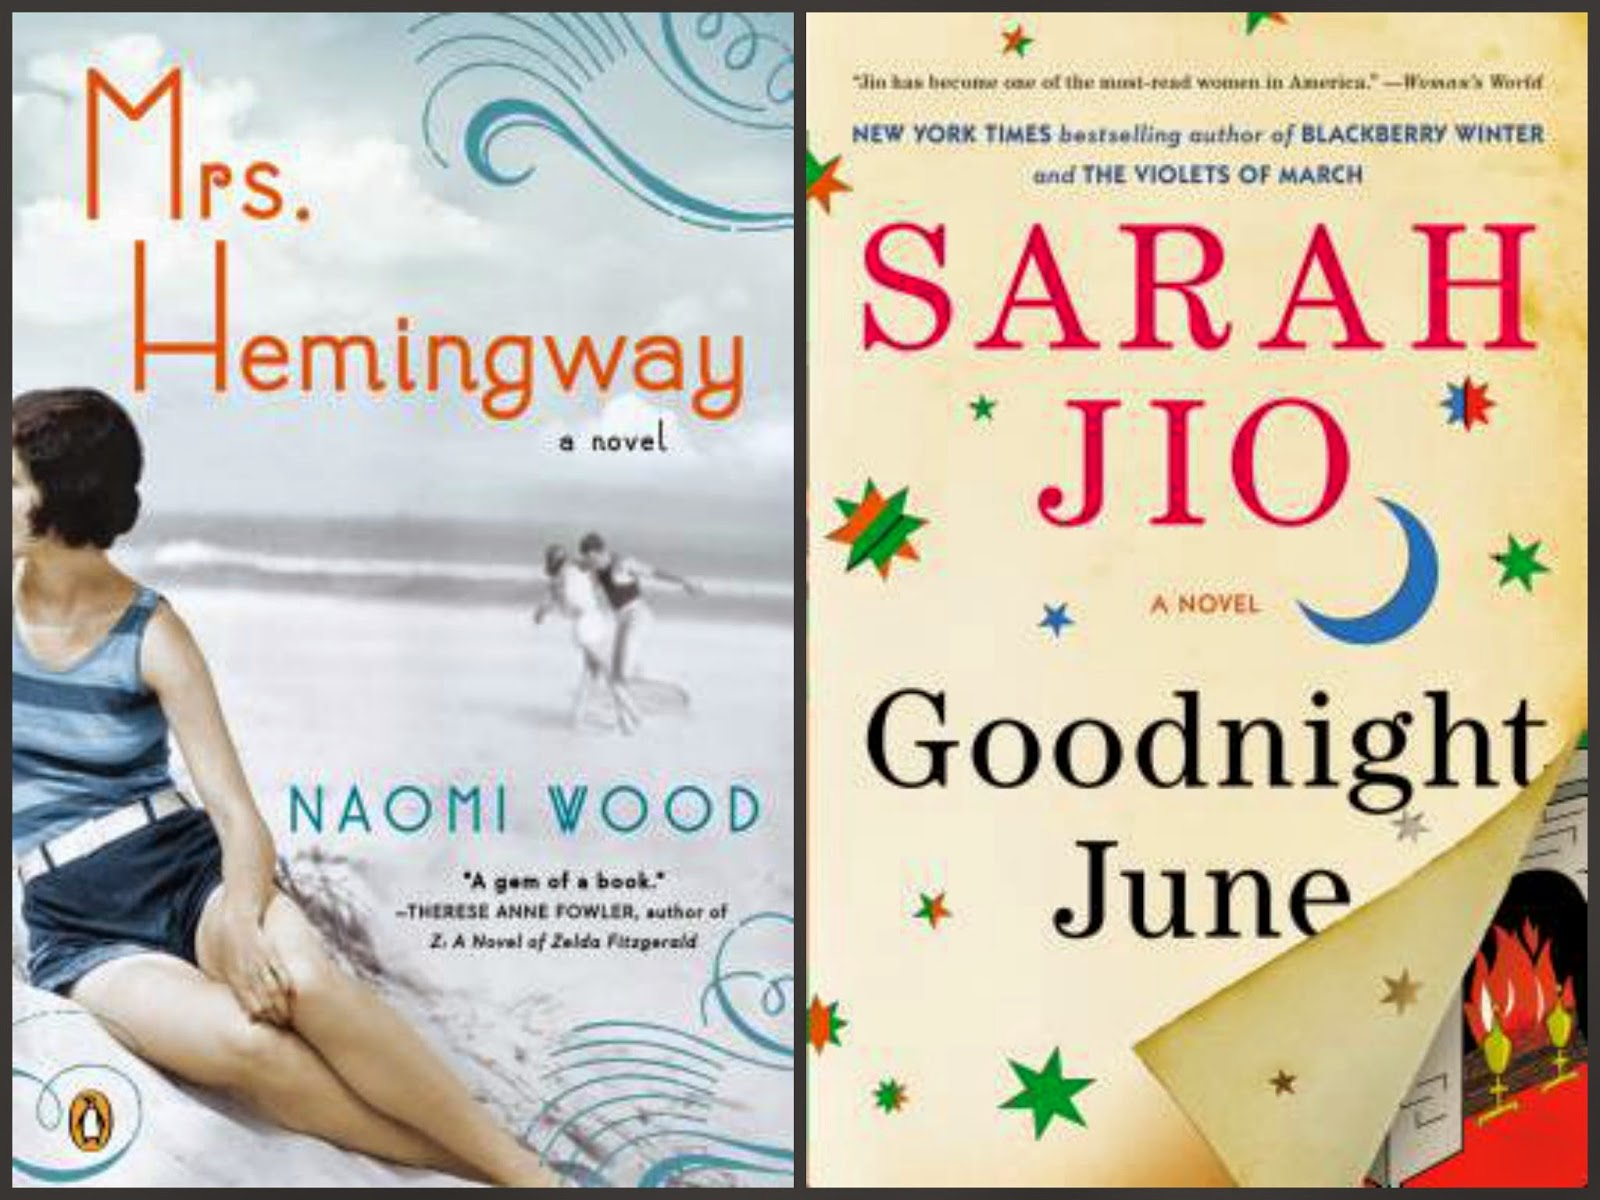 Mrs. Hemingway by Naomi Wood; Goodnight June by Sarah Jio